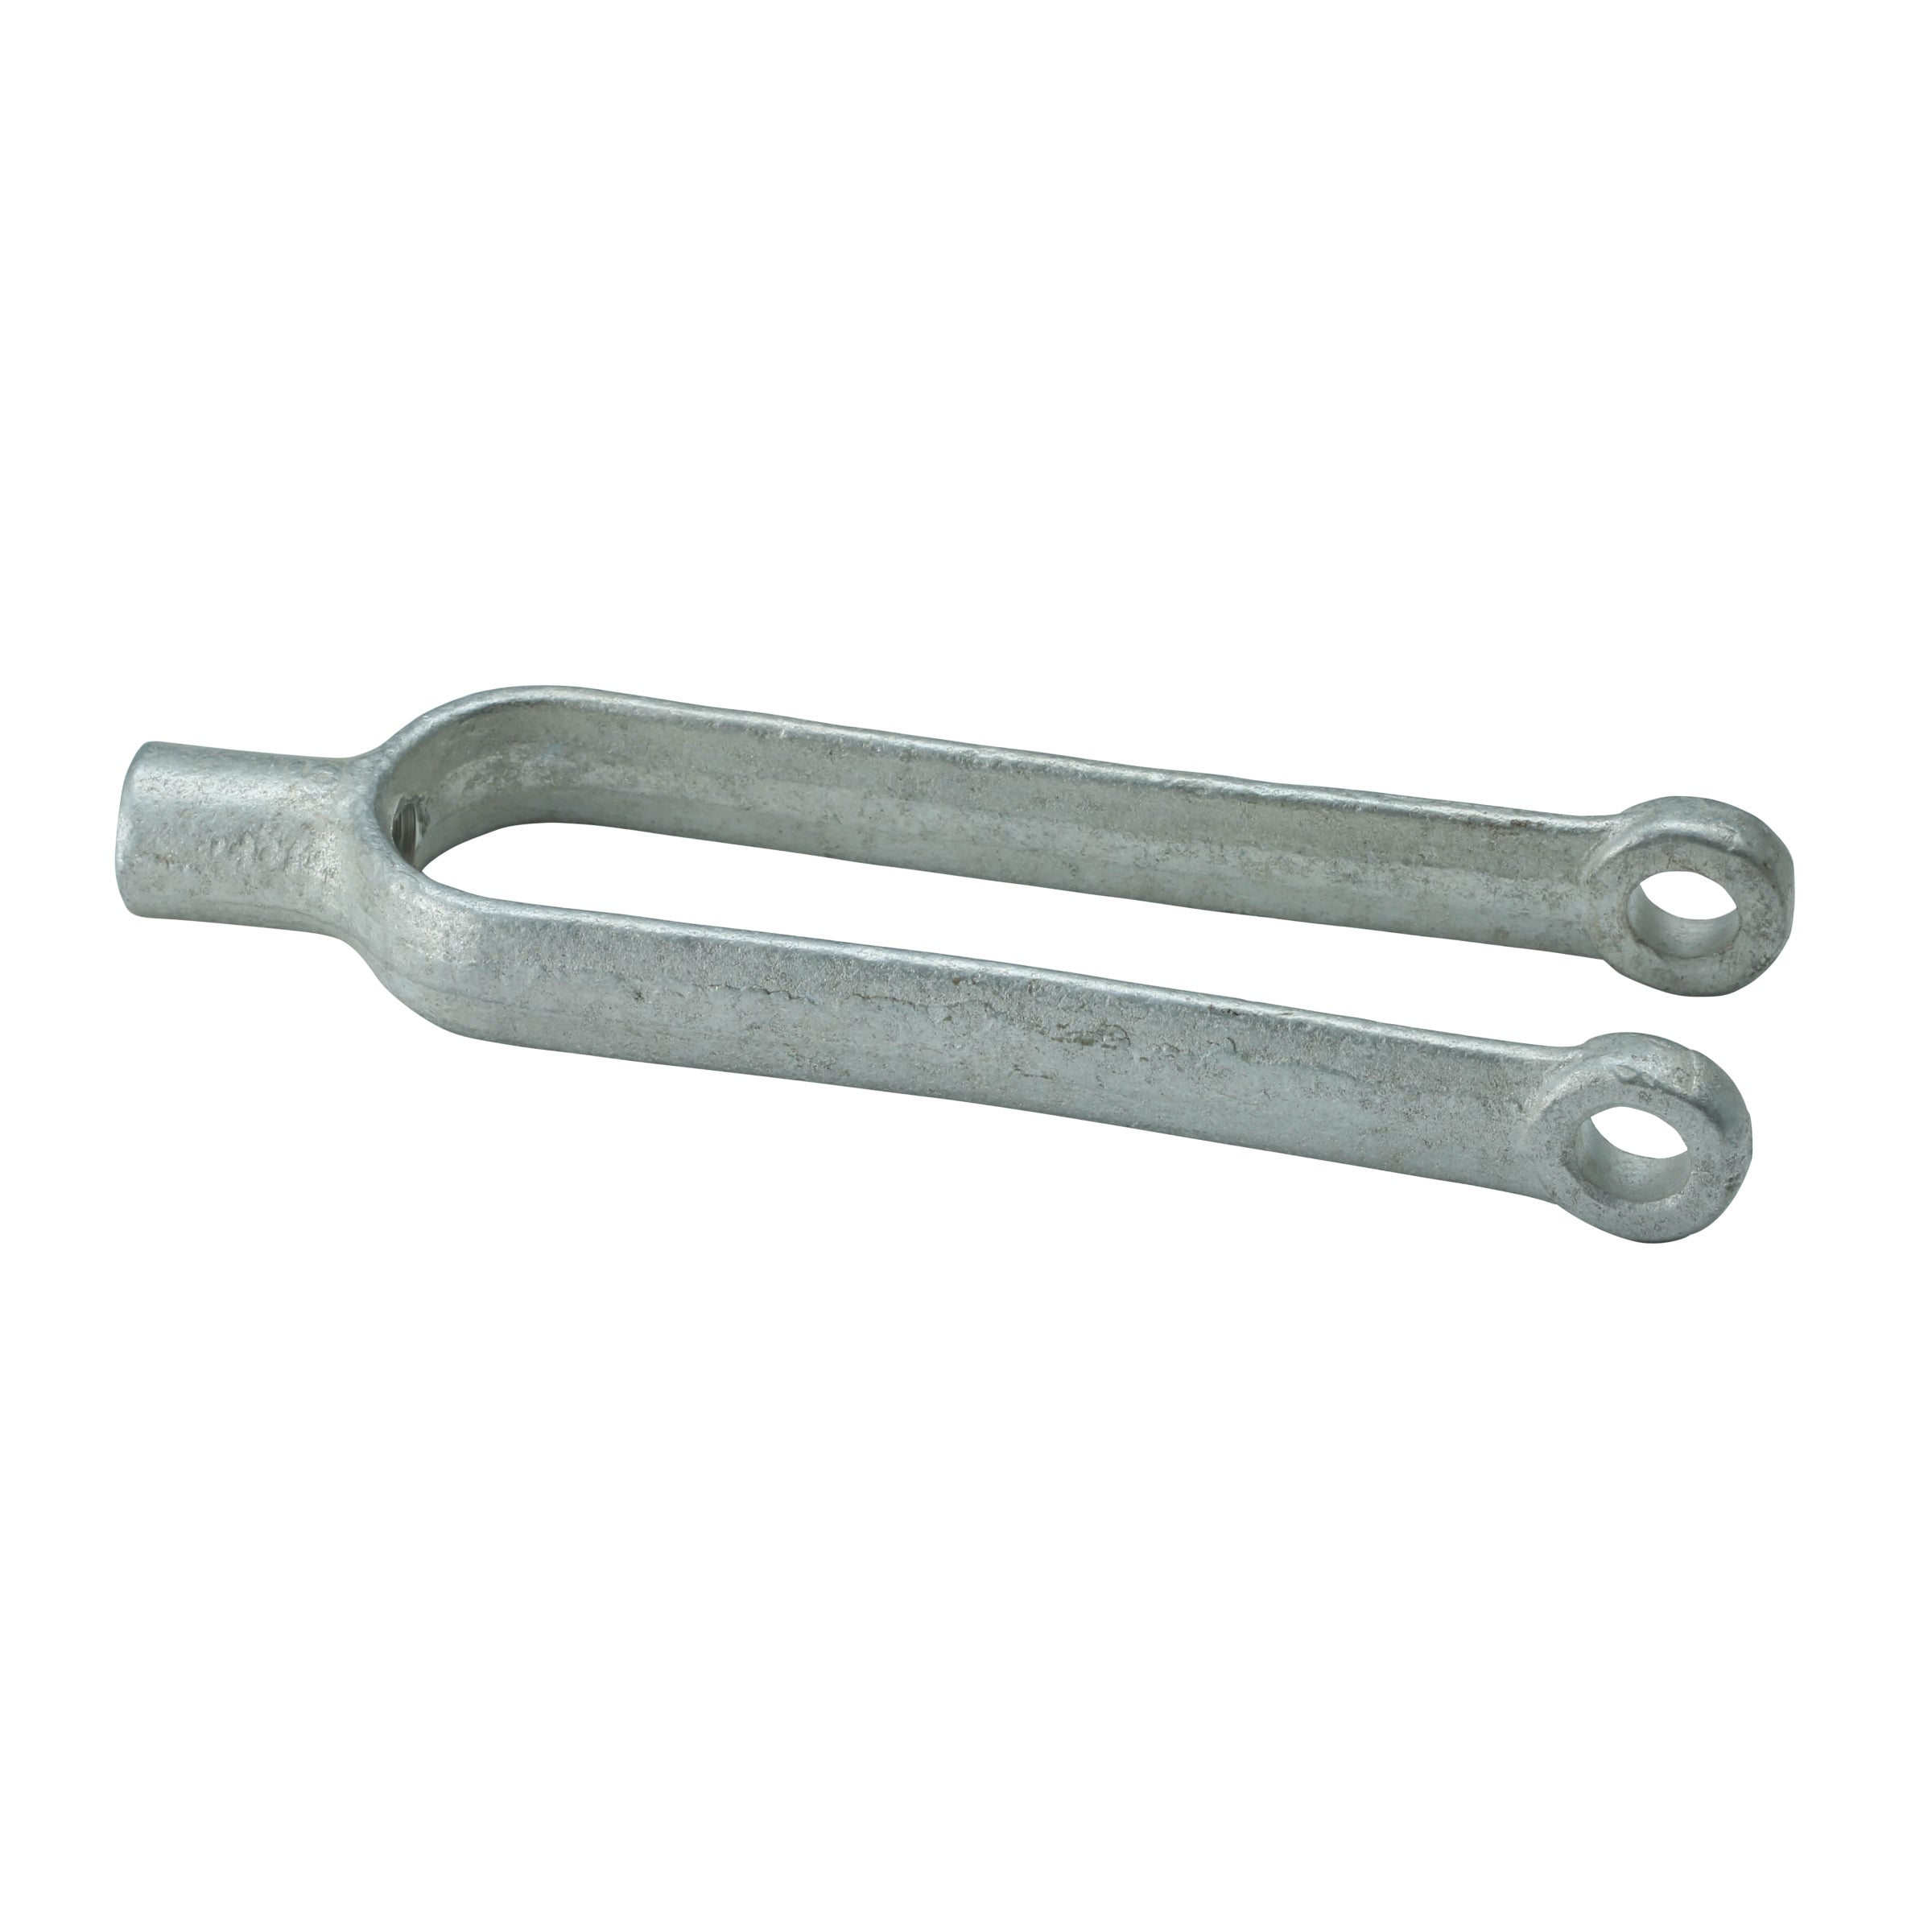 Brake Rod Adjustable Clevis • 1937-38